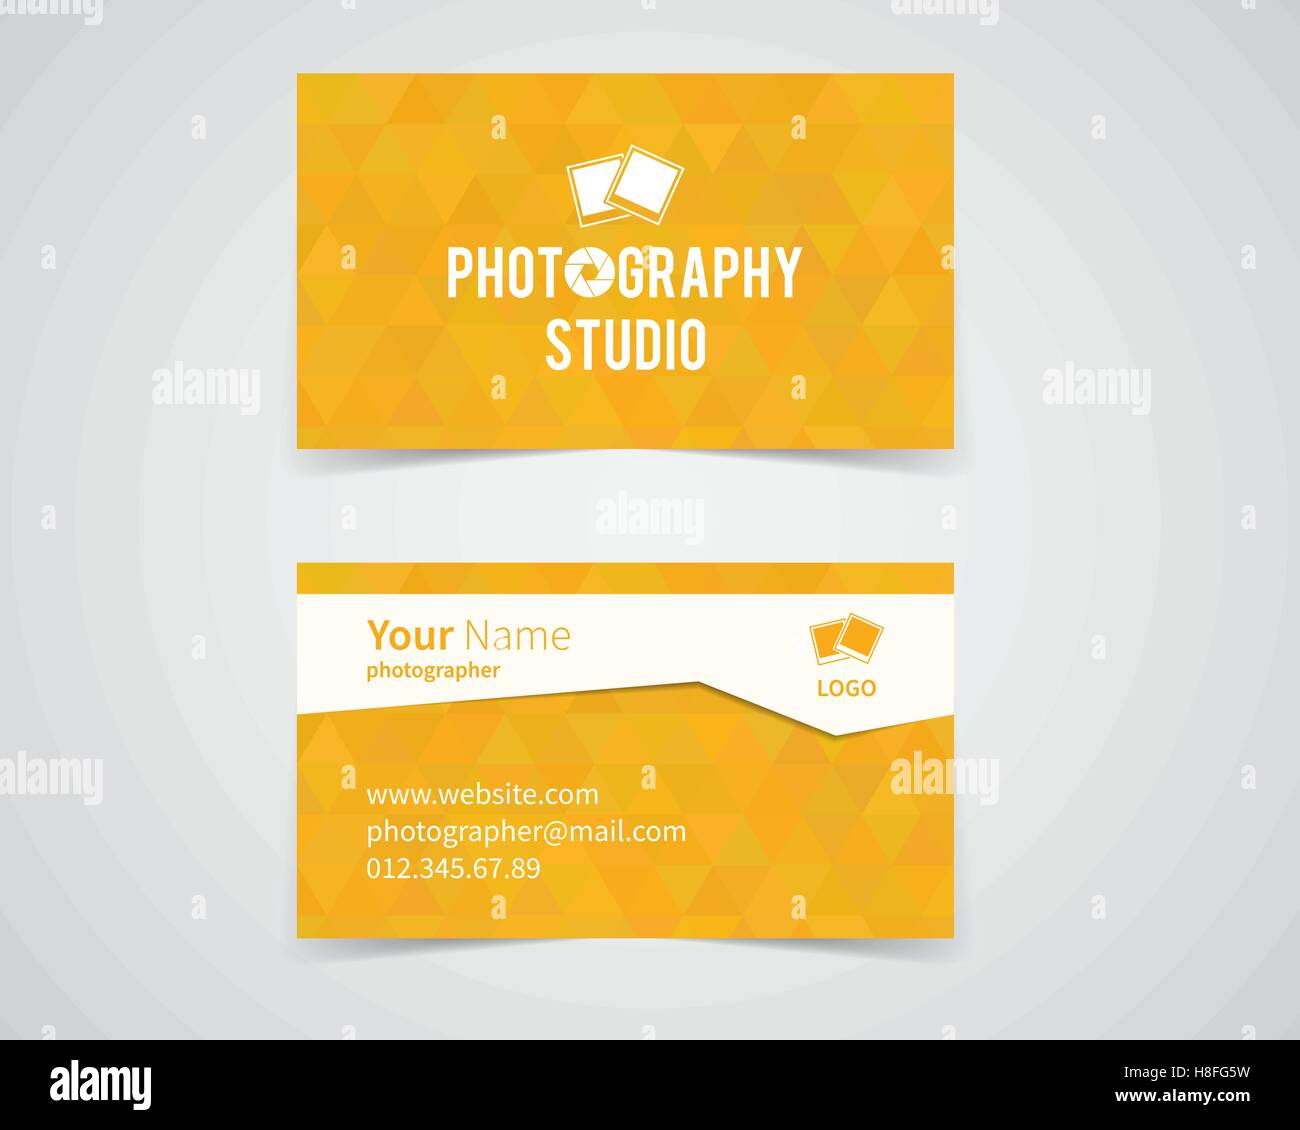 Modern Light Business Card Template For Photography Studio Unusual